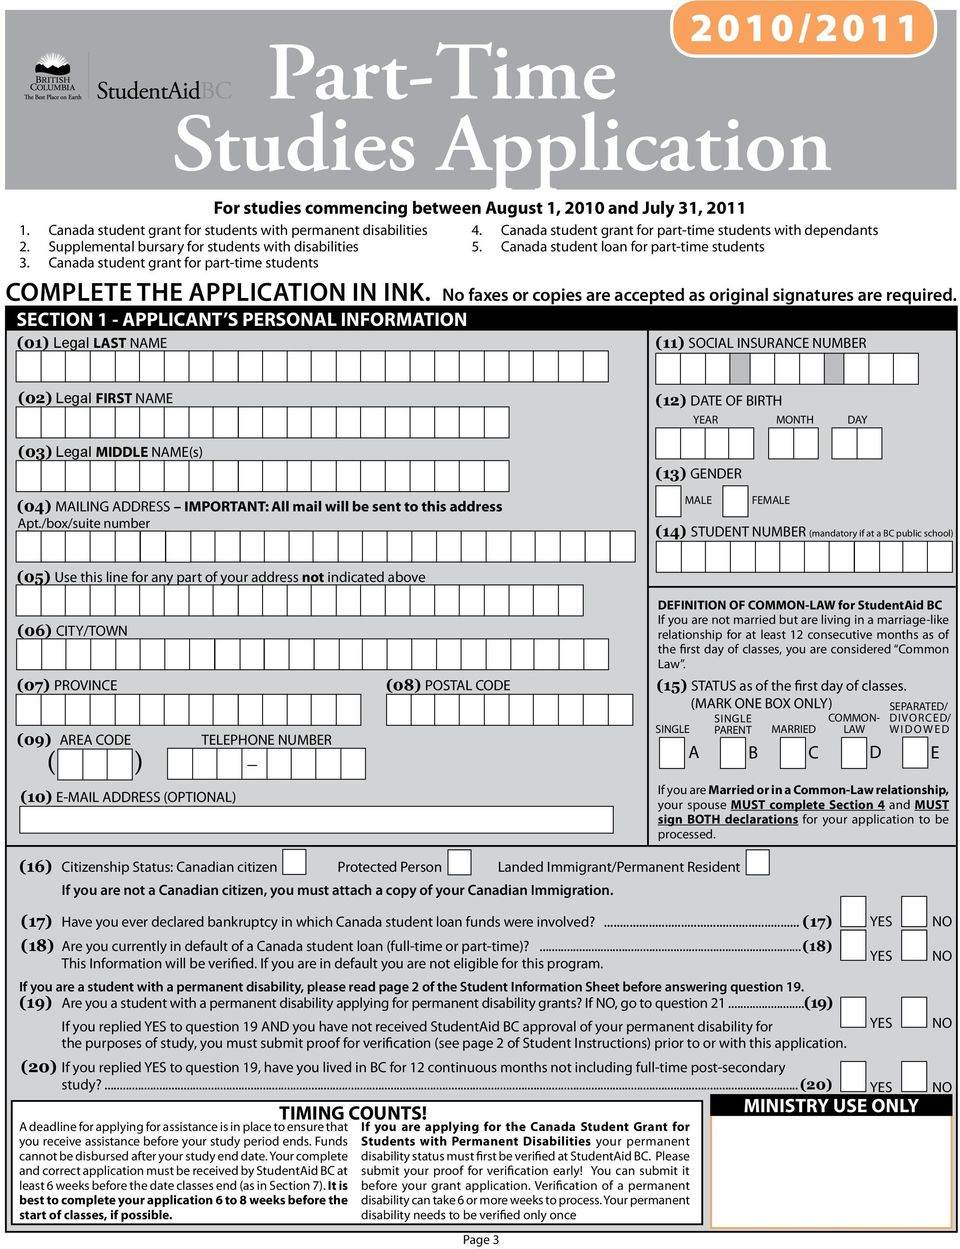 Canada student loan for part-time students COMPLETE THE APPLICATION IN INK. No faxes or copies are accepted as original signatures are required.